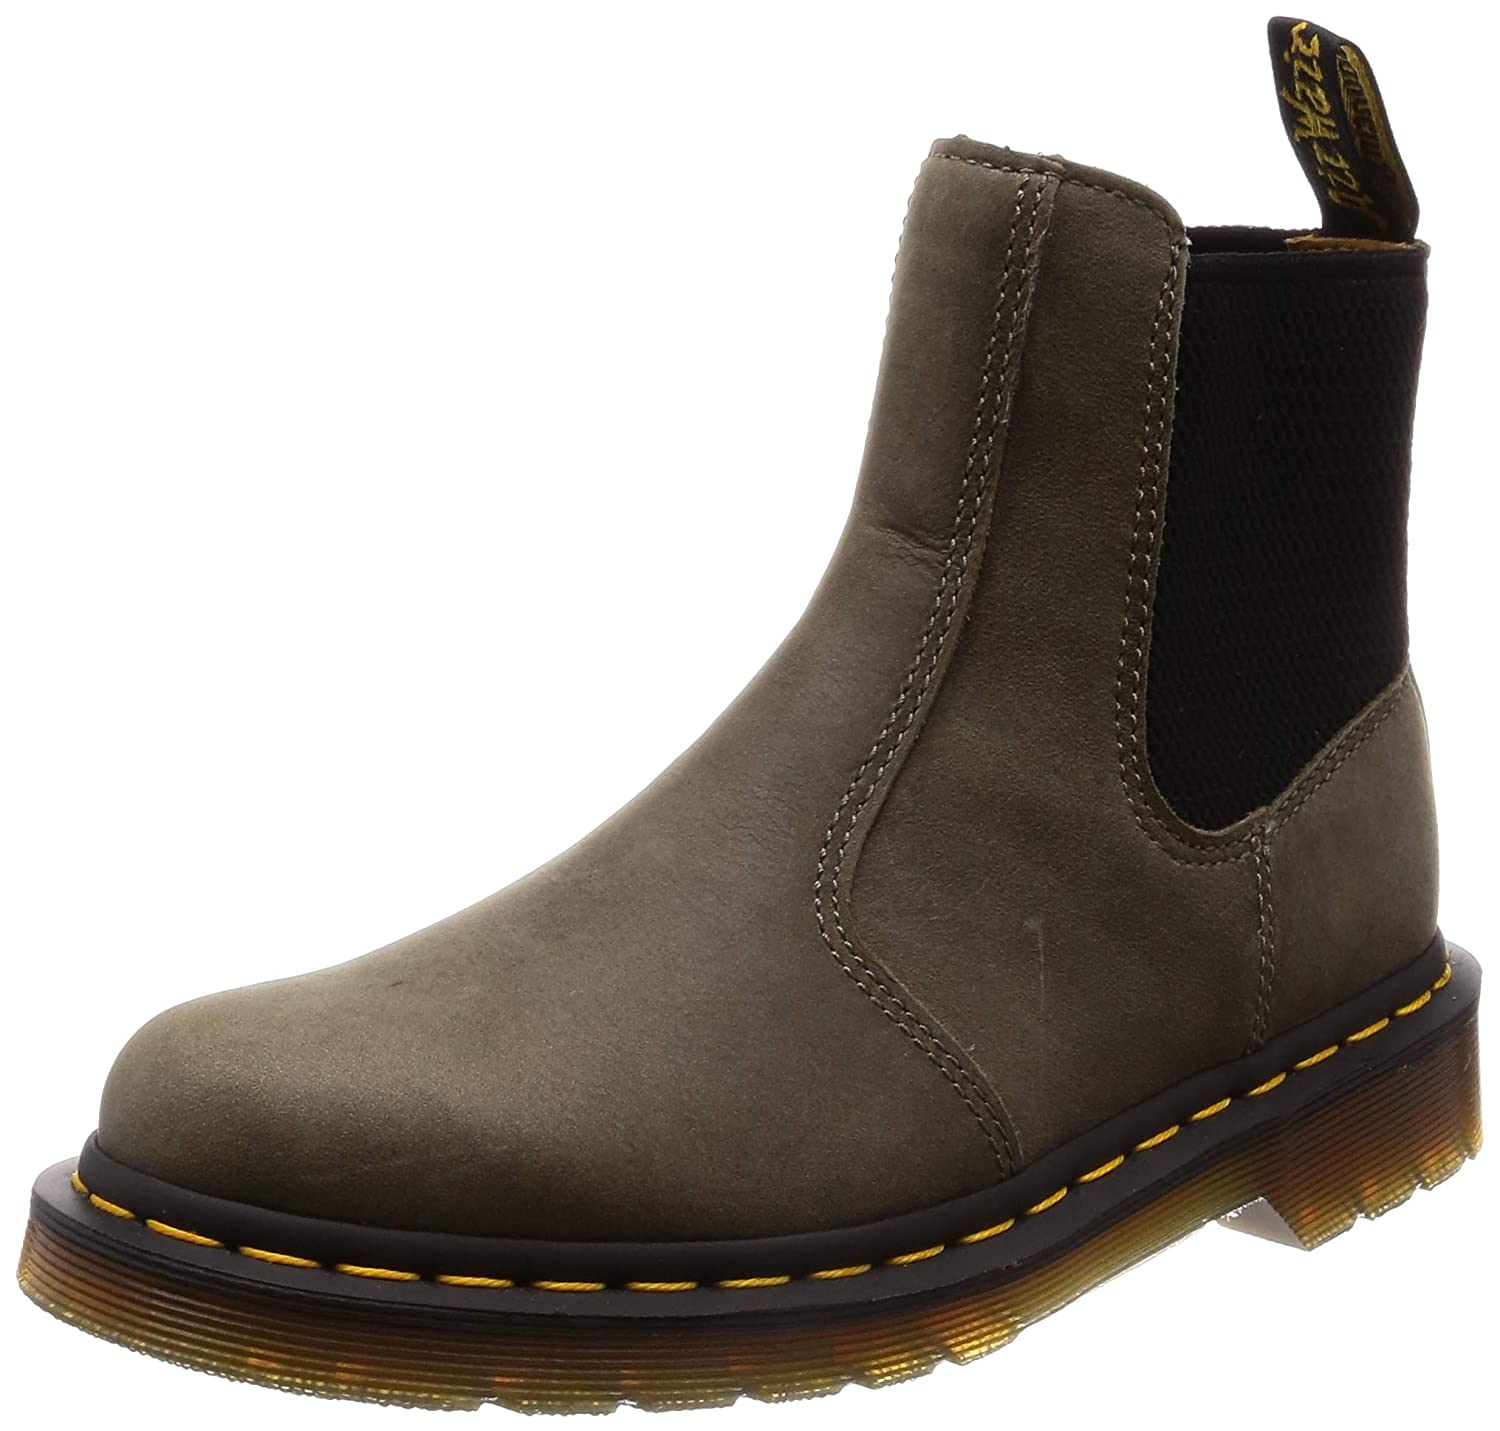 89880747865 Amazon.com | Dr. Martens 2976 Hardy Boots | Chelsea